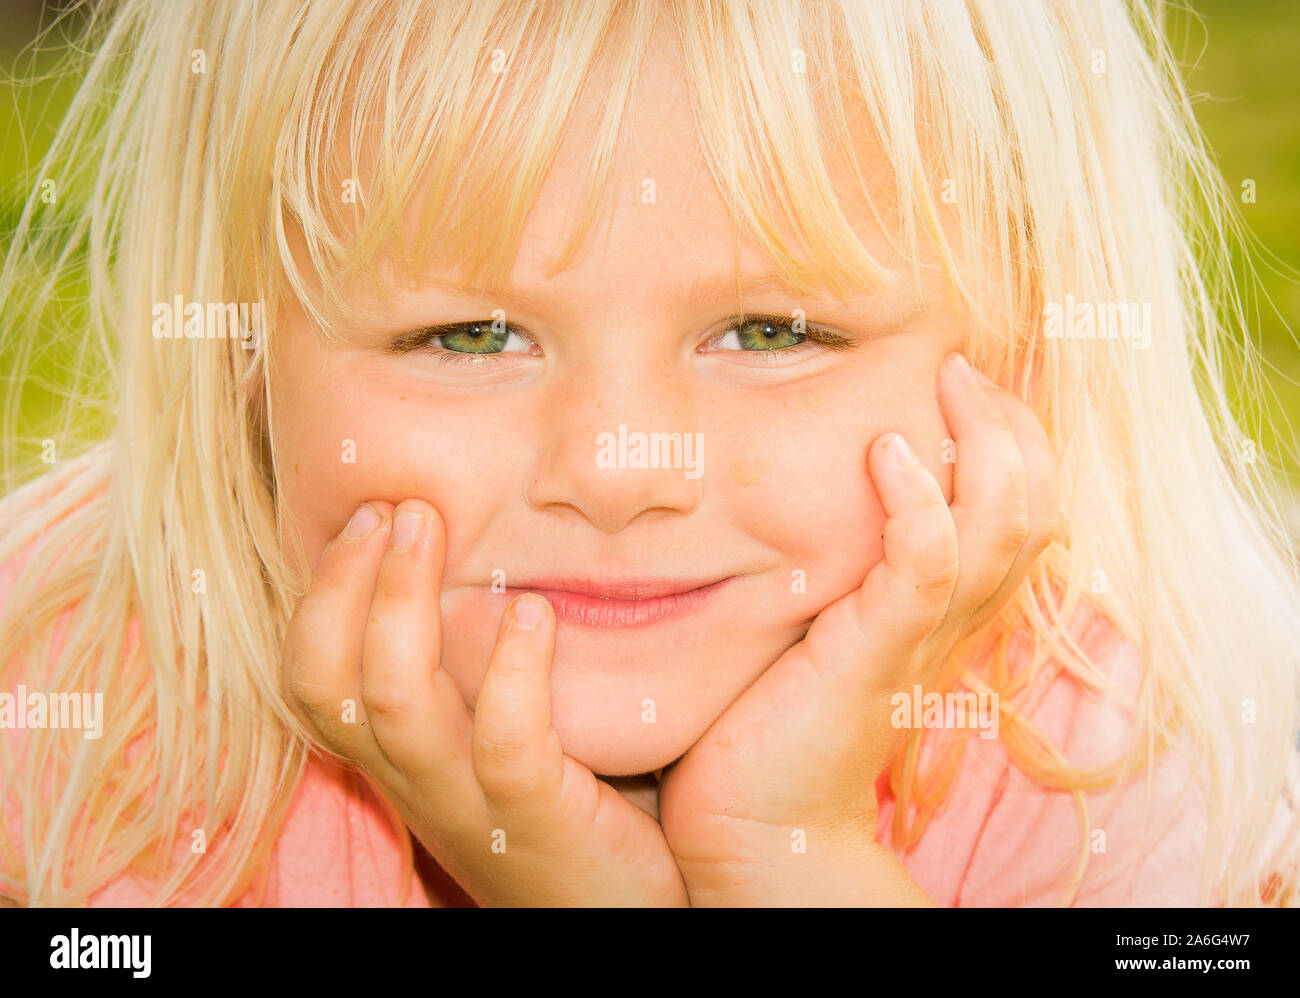 A Pretty Little Girl With Blonde Hair And Bright Green Eyes Lying